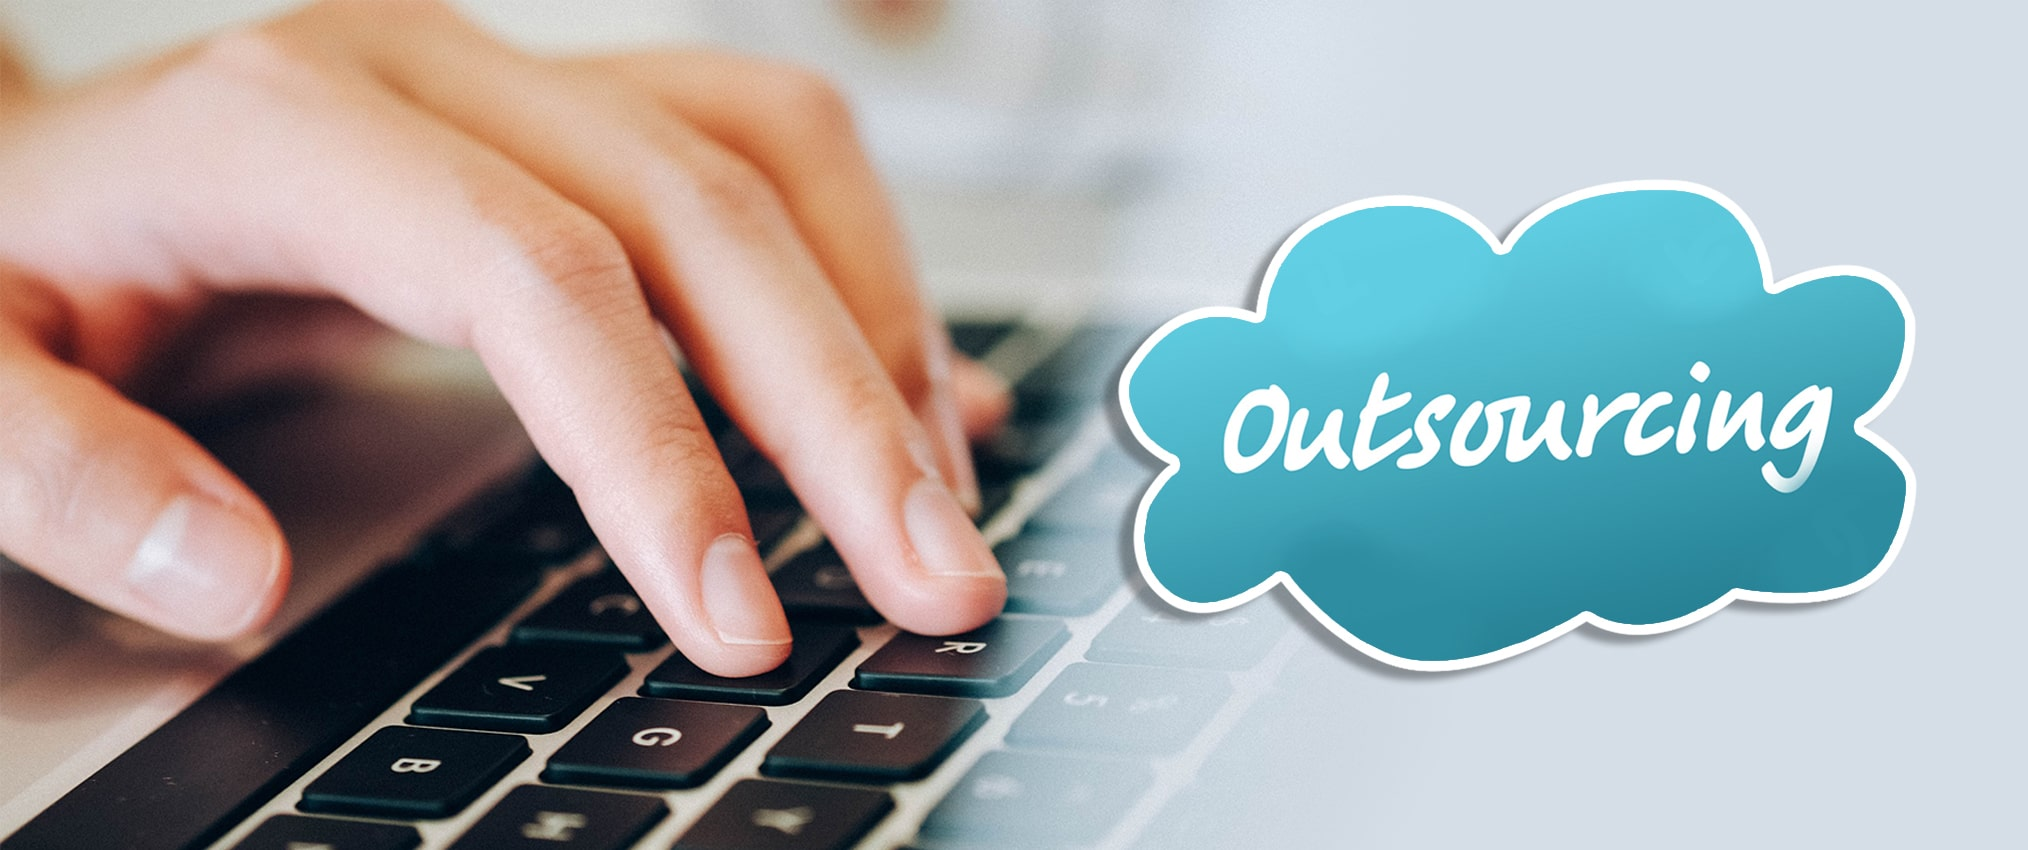 how-beneficial-is-outsourcing-and-online-data-entry-for-businesses